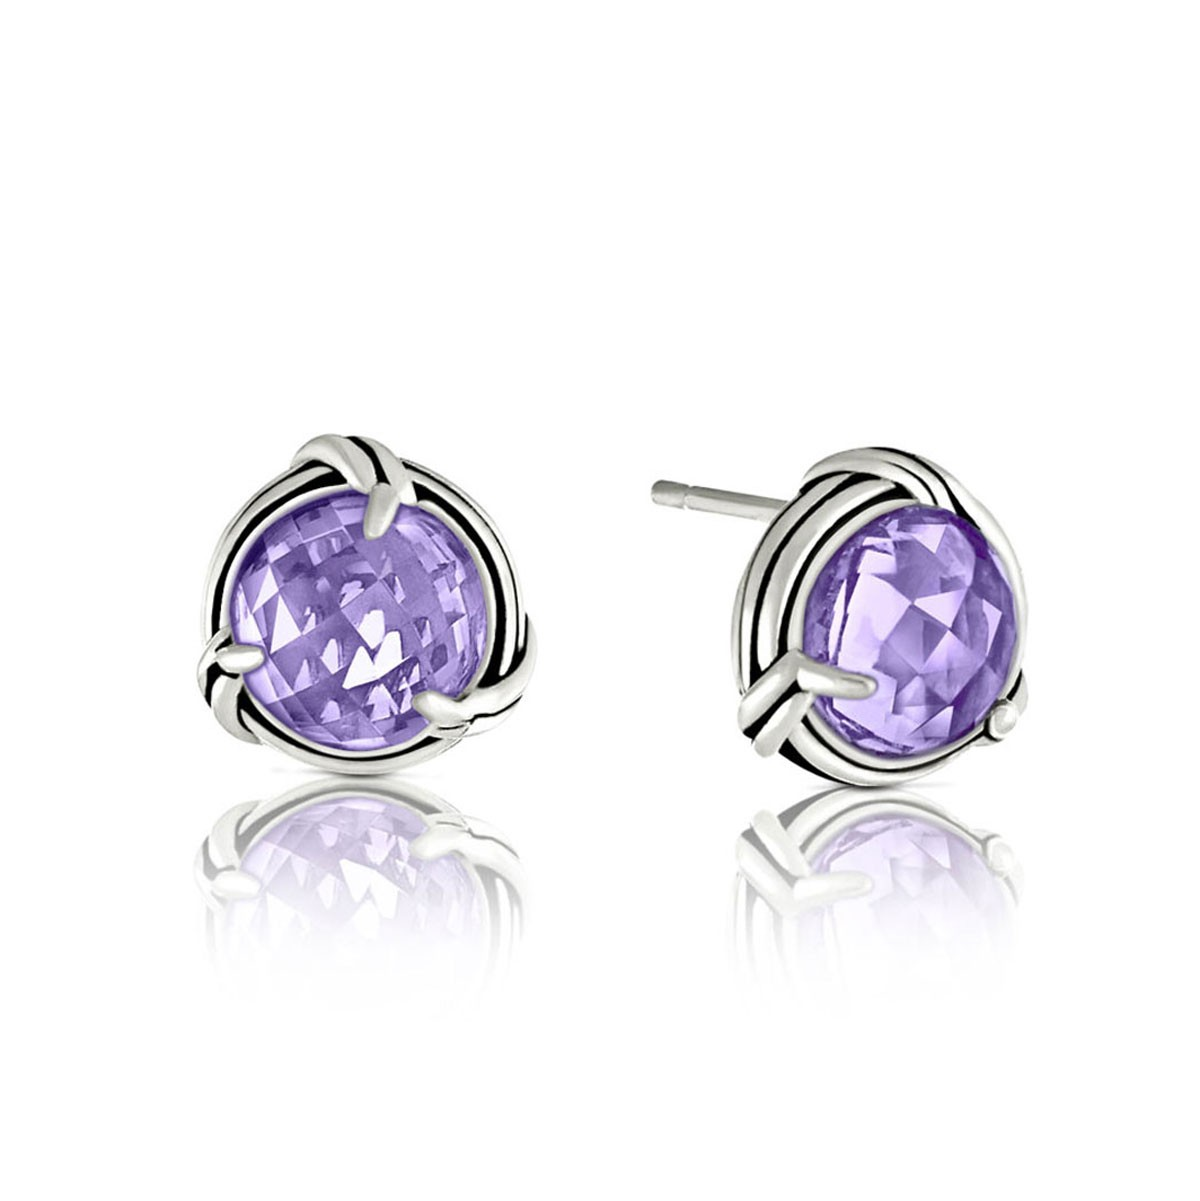 Peter Thomas Roth Ribbon And Reed Lavender Amethyst Stud Earrings In Sterling Silver